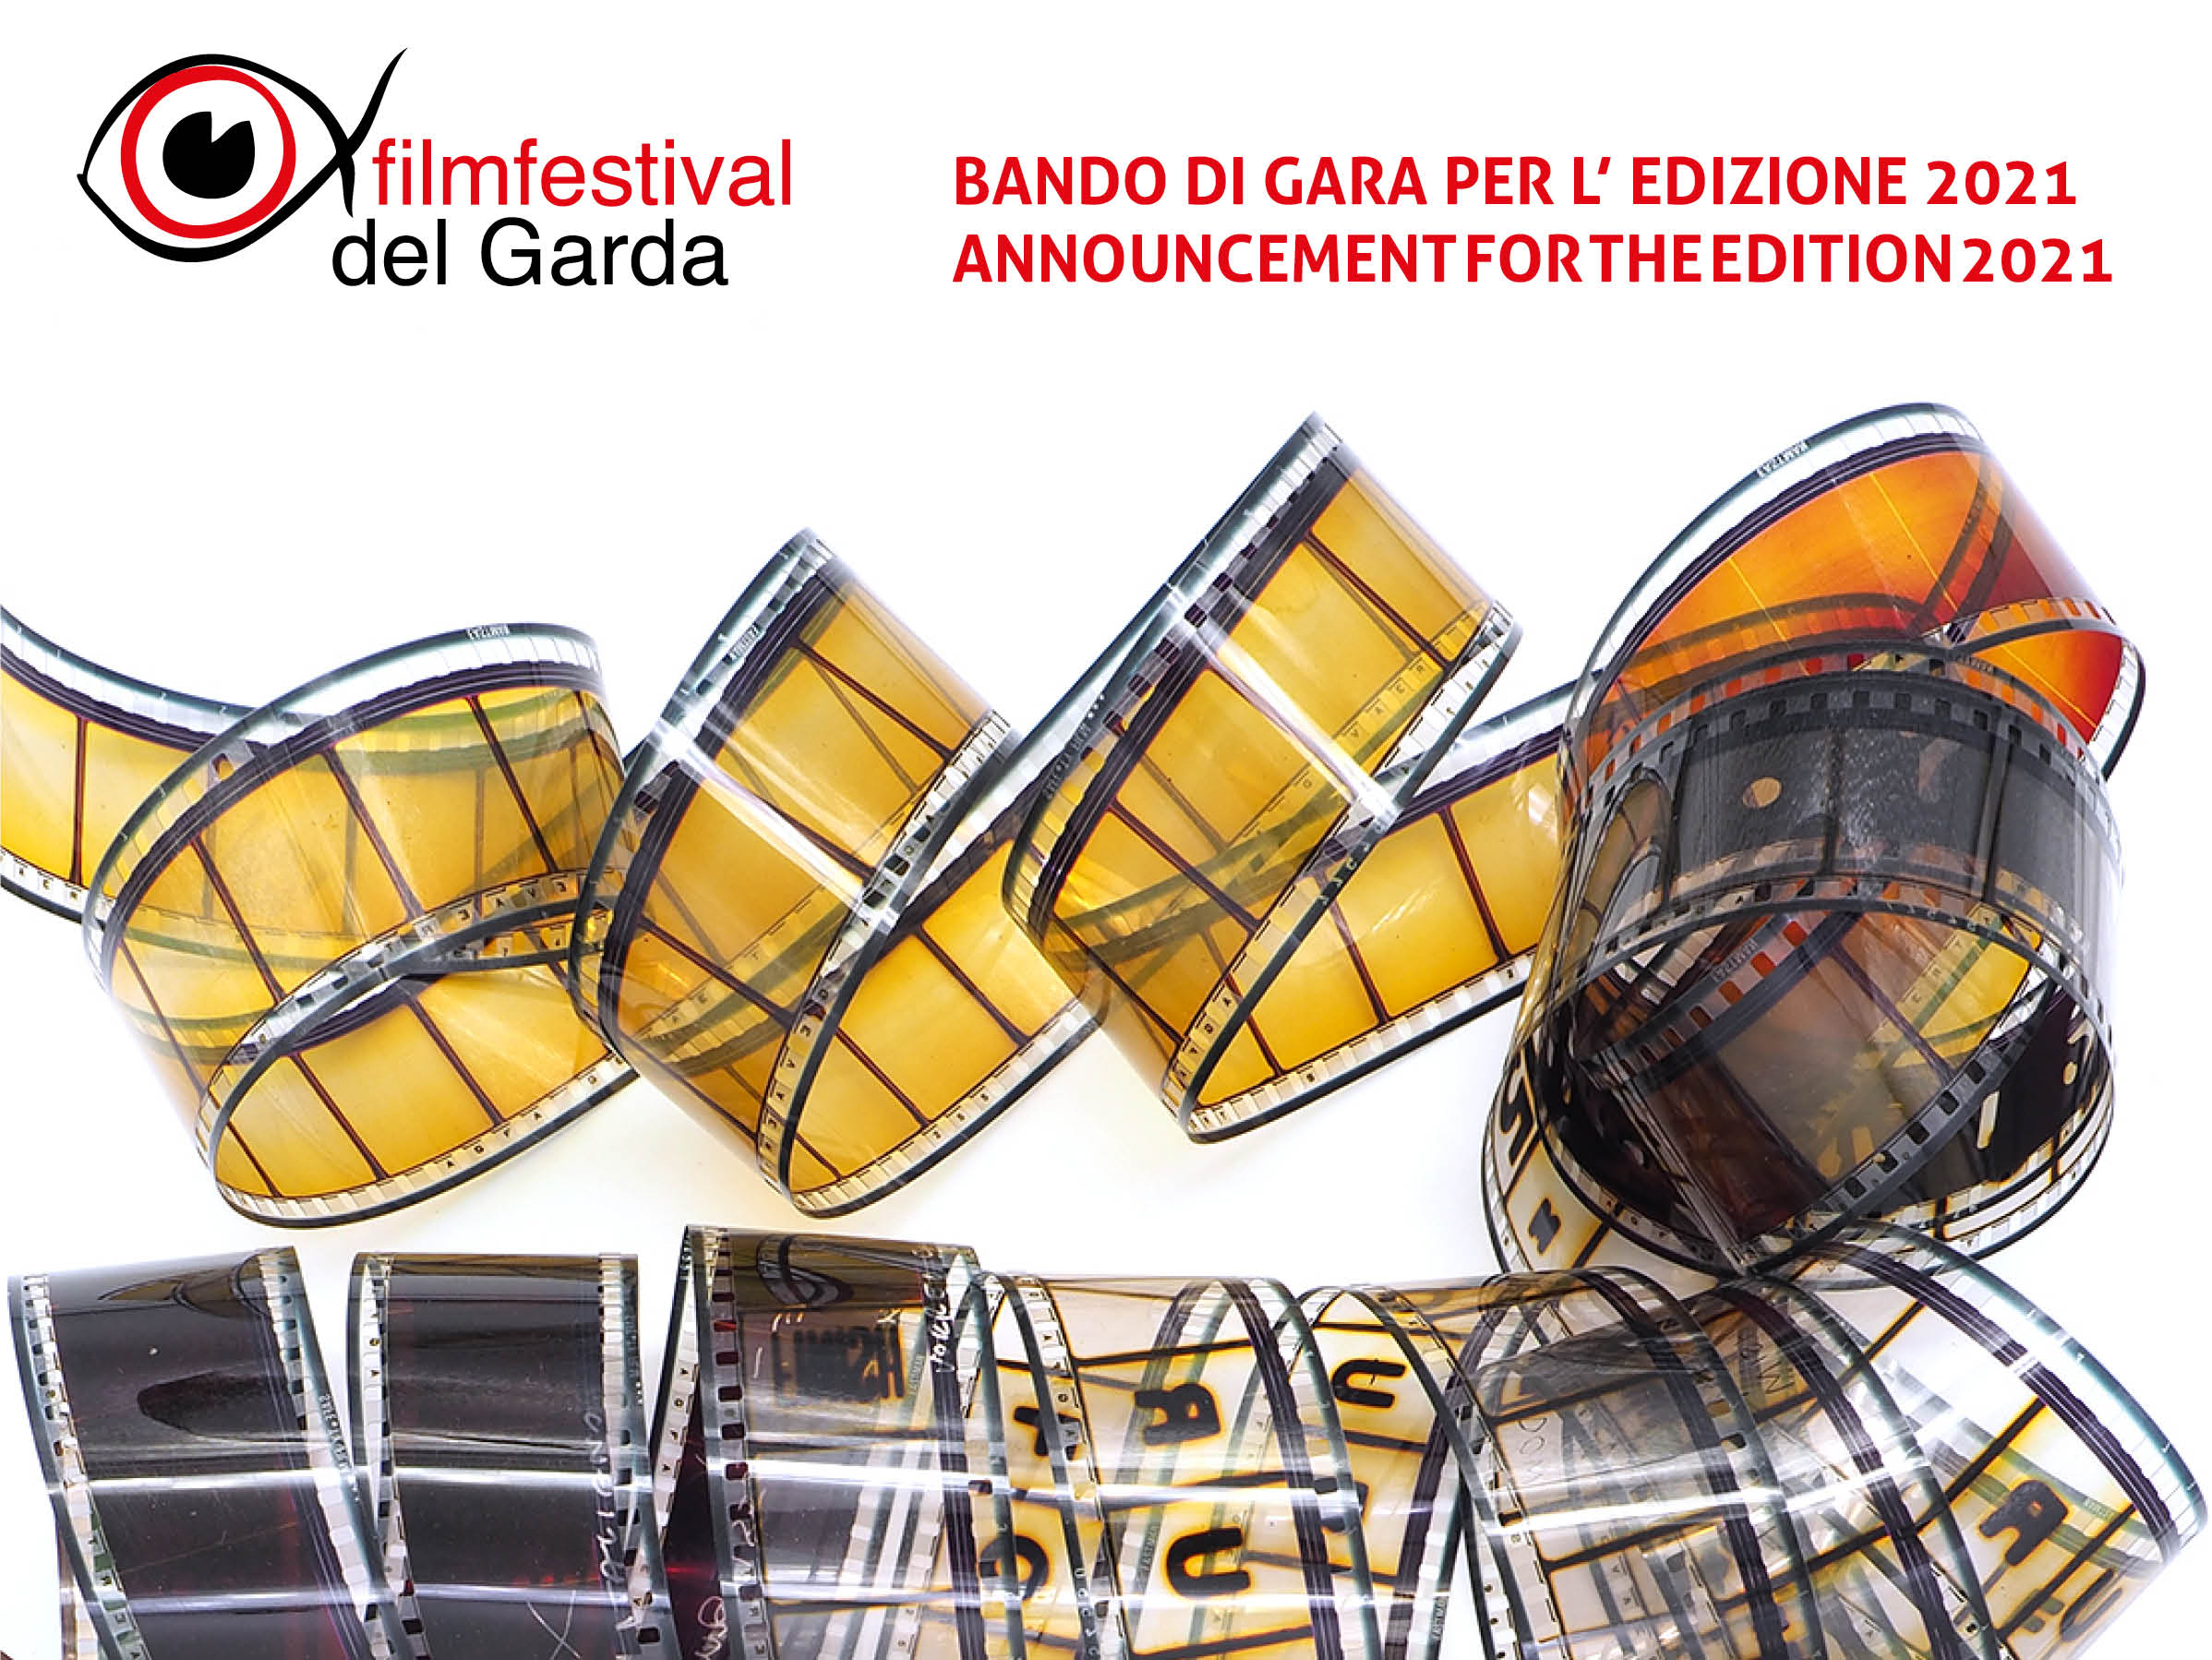 BANDO DI GARA PER L' EDIZIONE 2021 / ANNOUNCEMENT FOR THE EDITION 2021